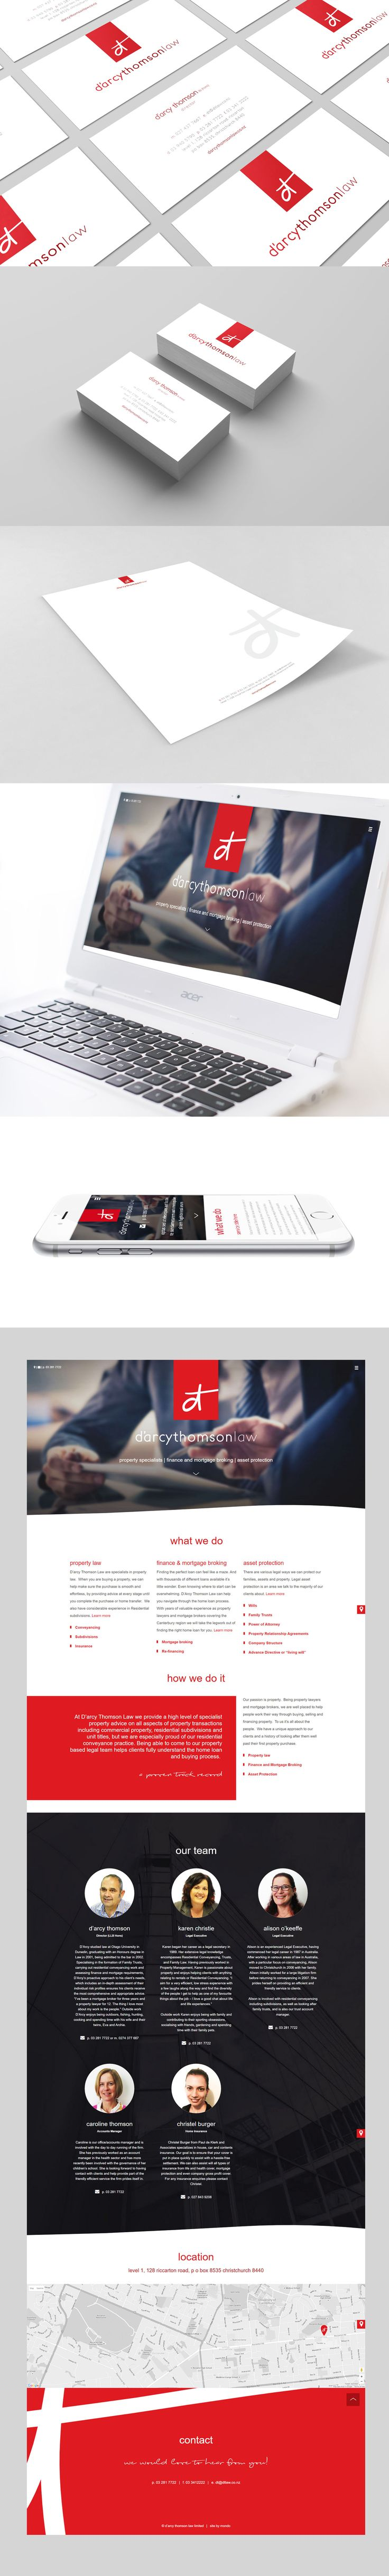 Brand Identity. Print Collateral. Responsive + Scrolling Website Design + Development. D'Arcy Thompson Law, Christchurch, New Zealand.